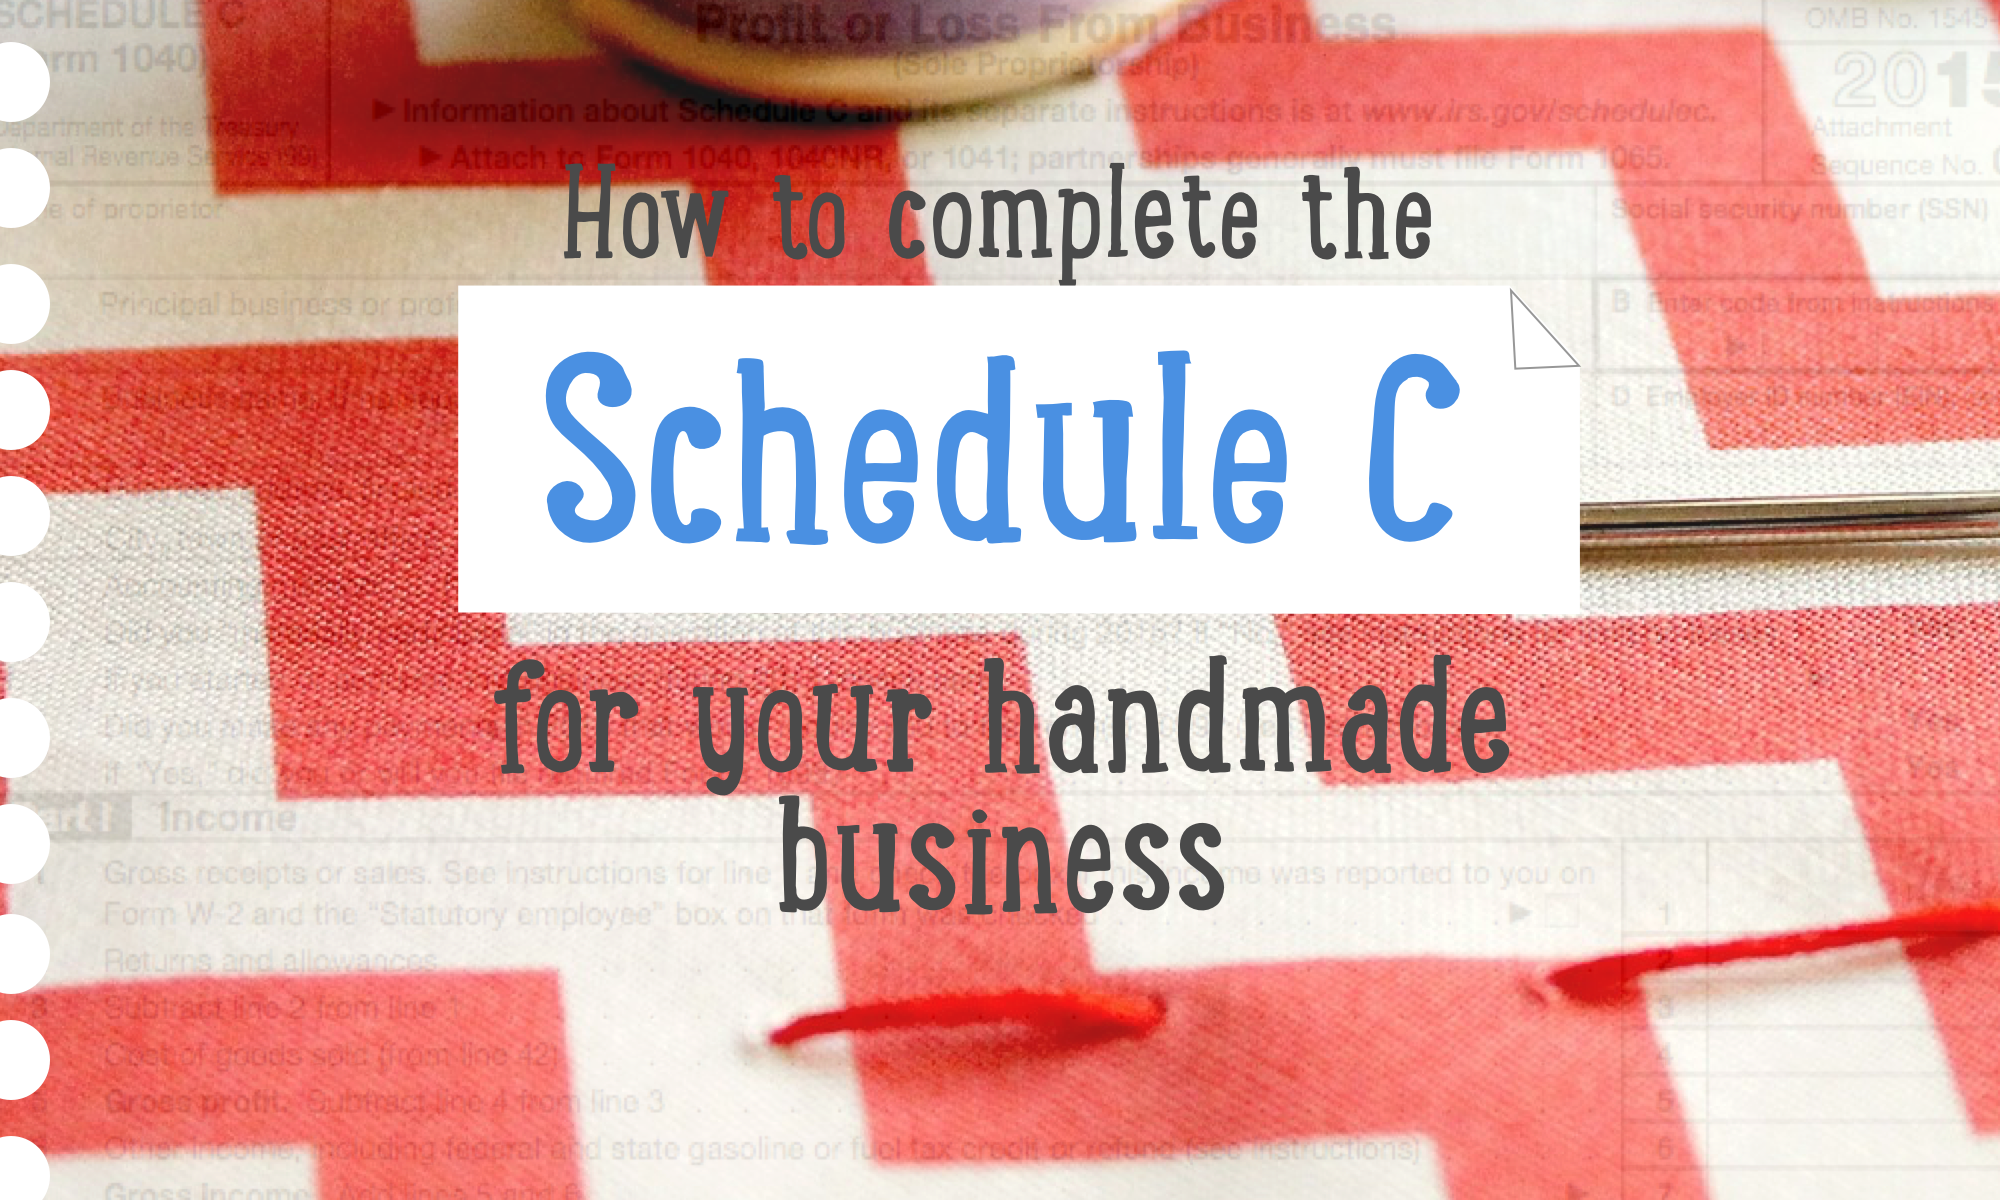 How to complete a Schedule C for your handmade business